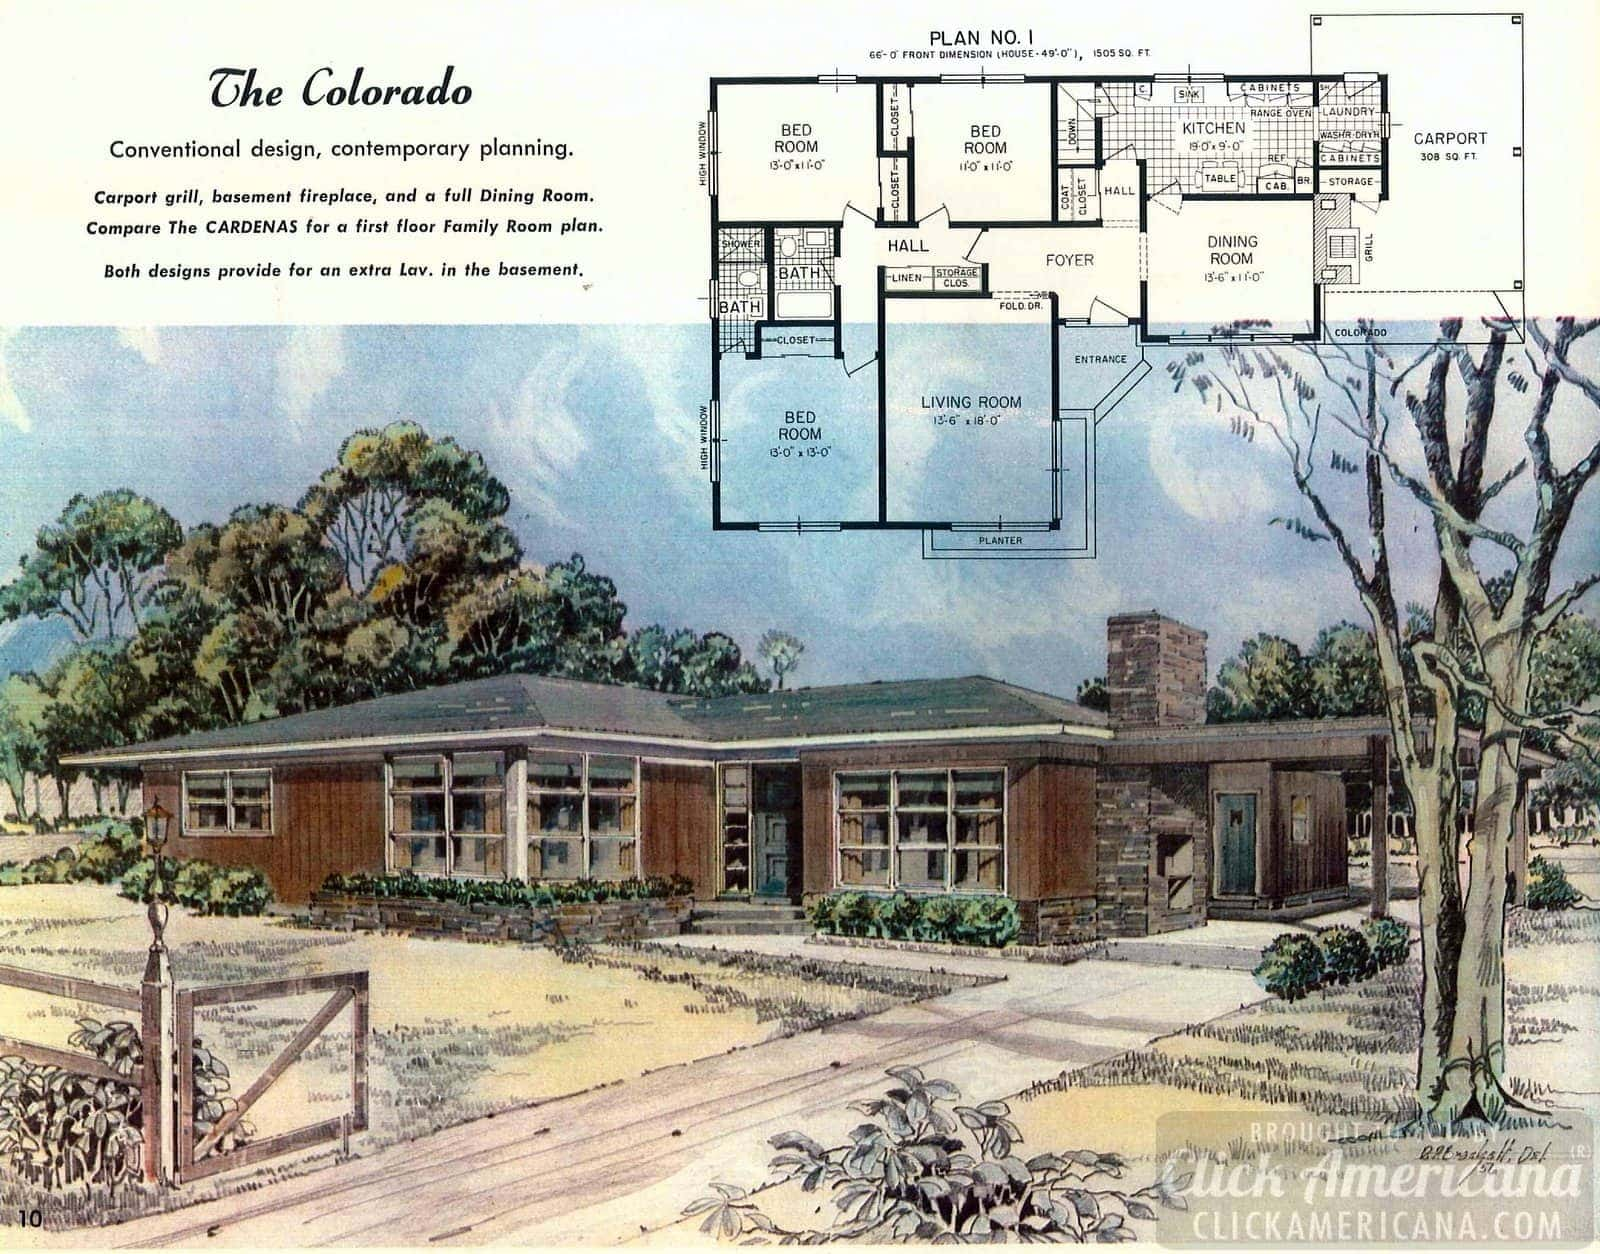 The Colorado: House design plans from the '50s